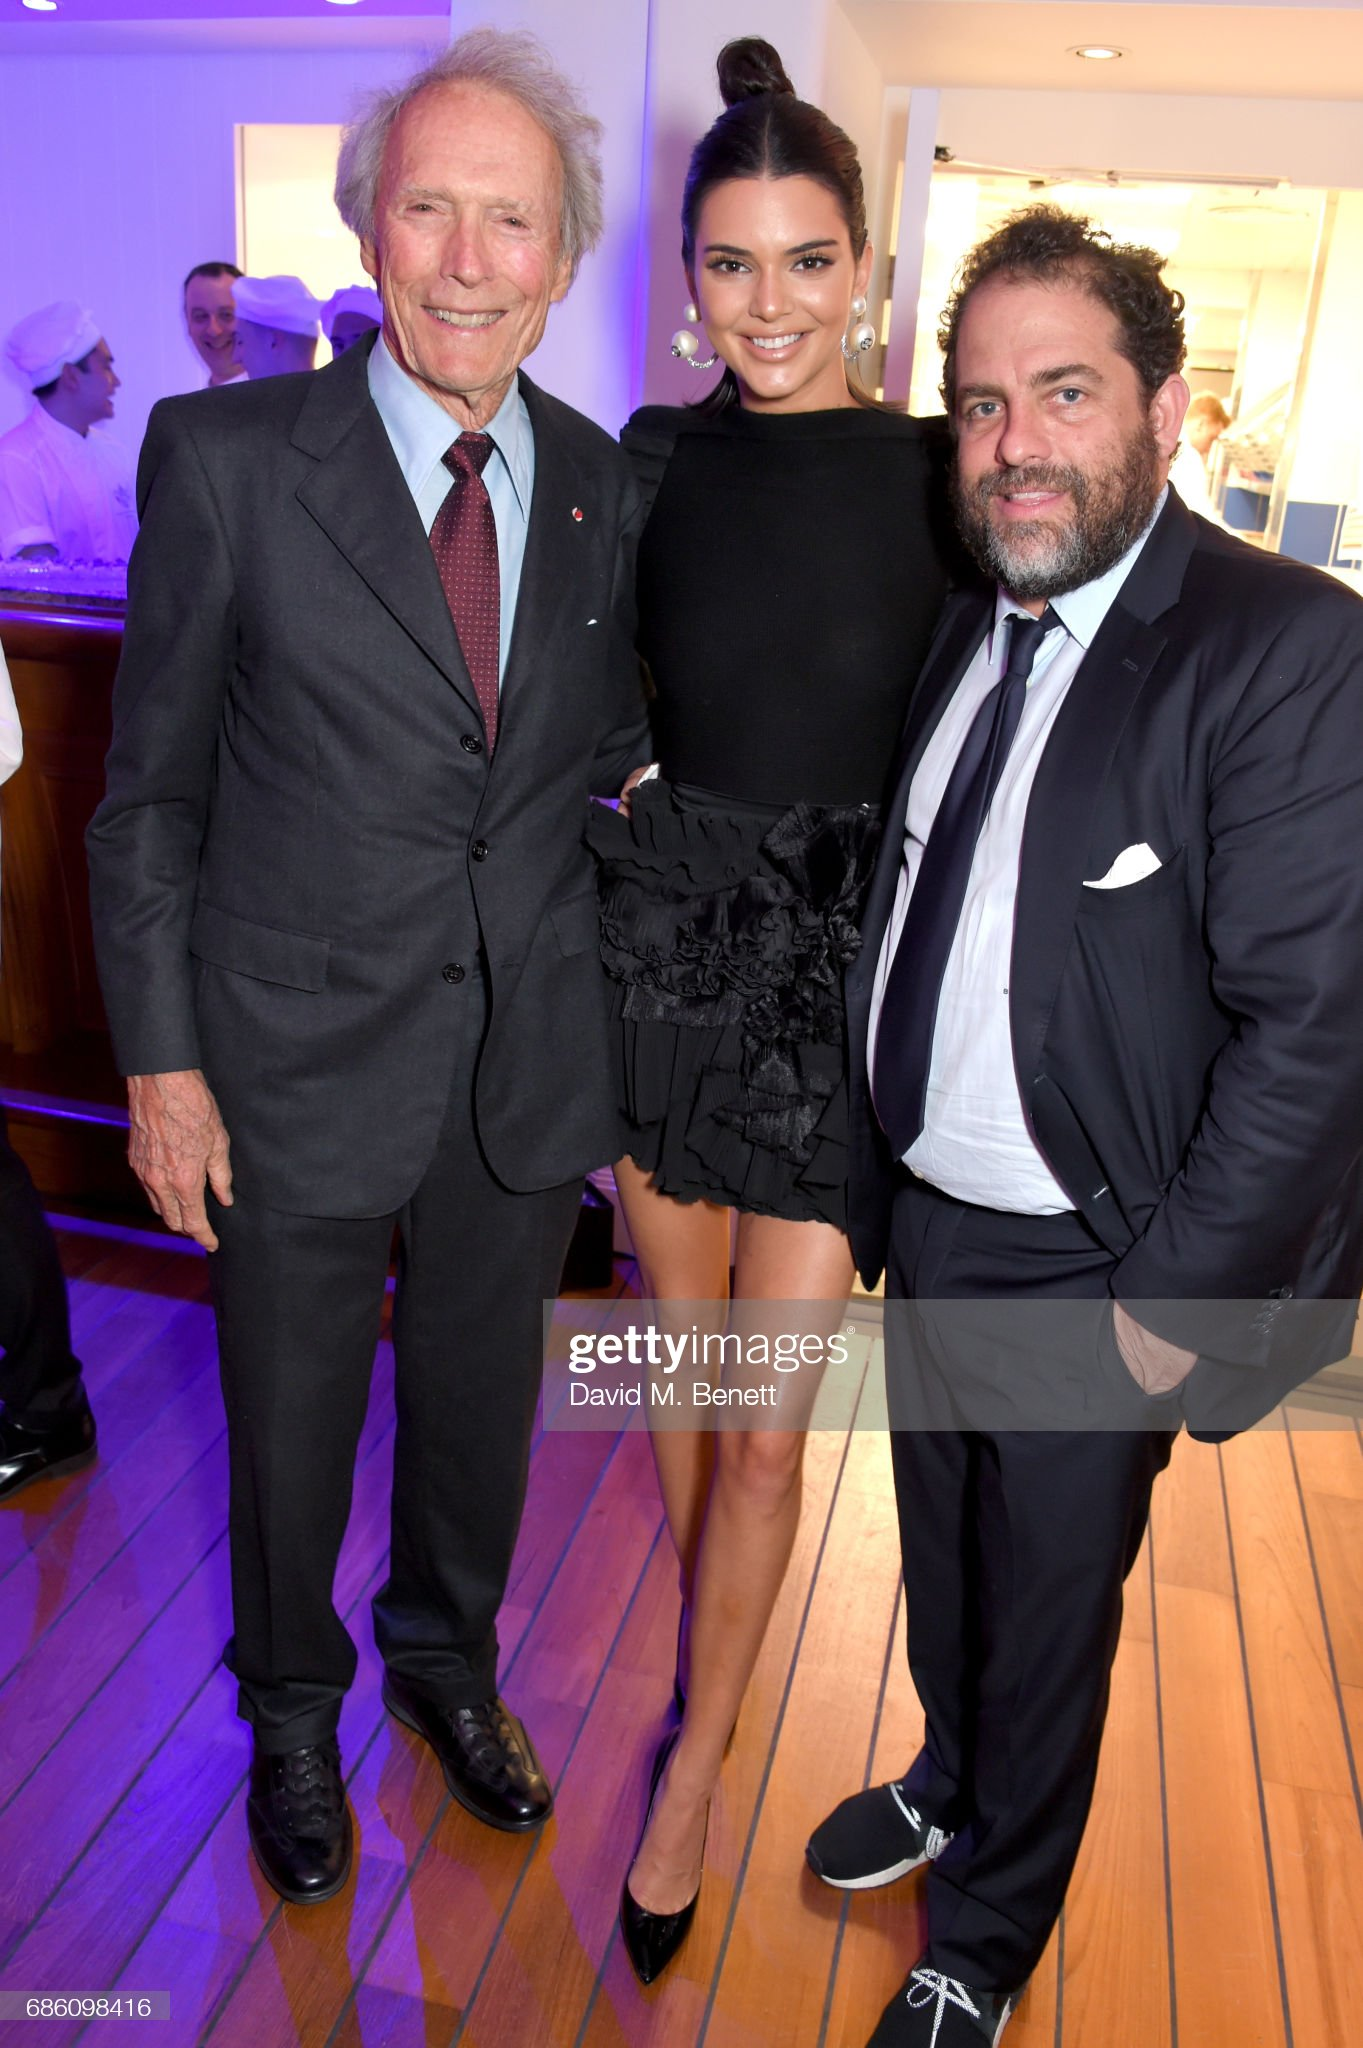 ¿Cuánto mide Clint Eastwood? - Altura - Real height - Página 2 Clint-eastwood-kendall-jenner-and-brett-ratner-attend-the-vanity-fair-picture-id686098416?s=2048x2048